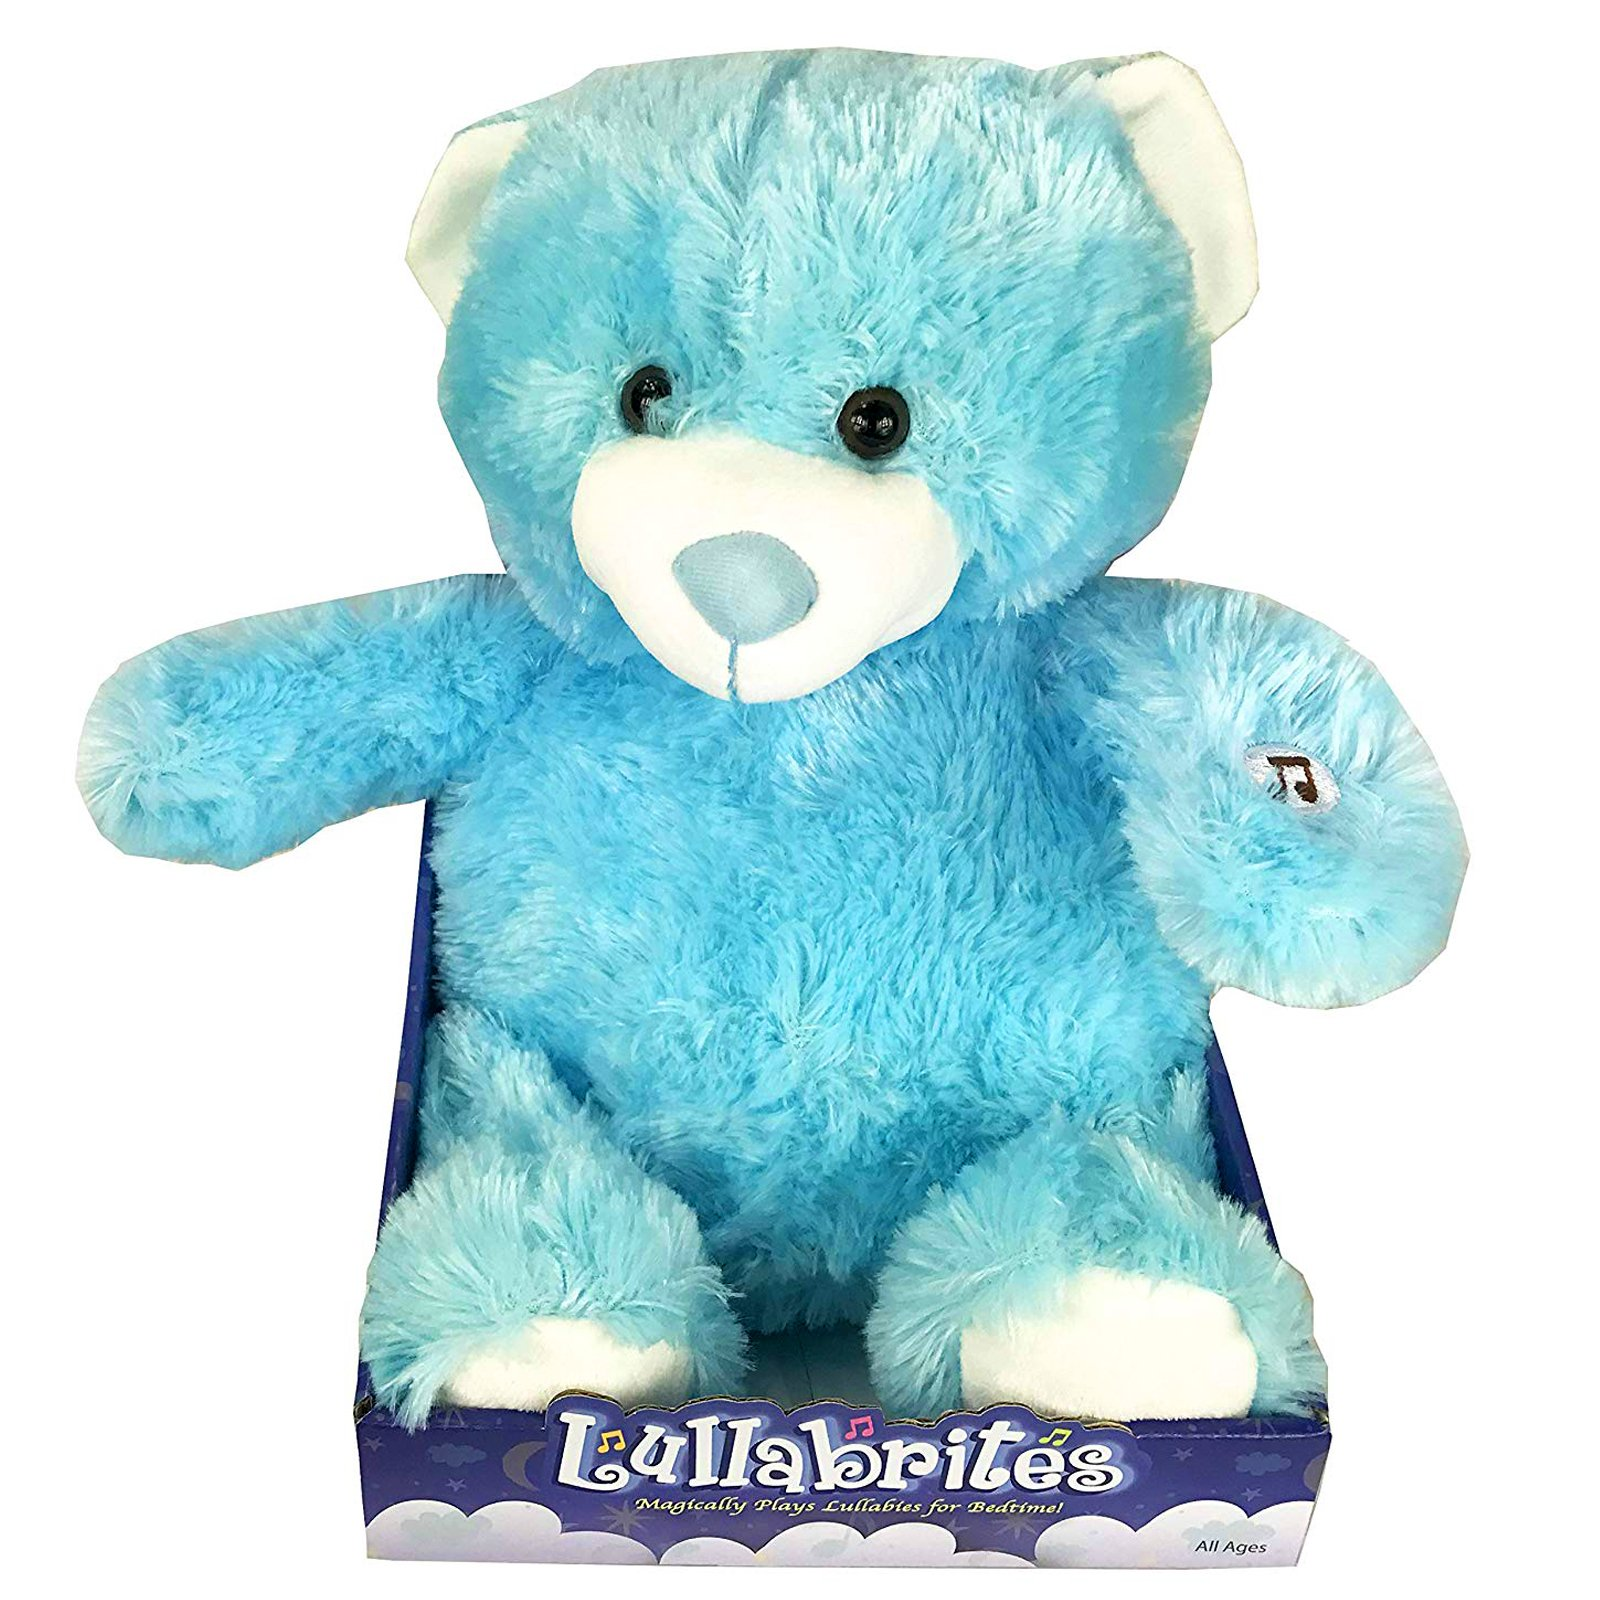 Lullabrites Kids Plush Blue Bear Lights Up Plays Bedtime Music As Seen On TV